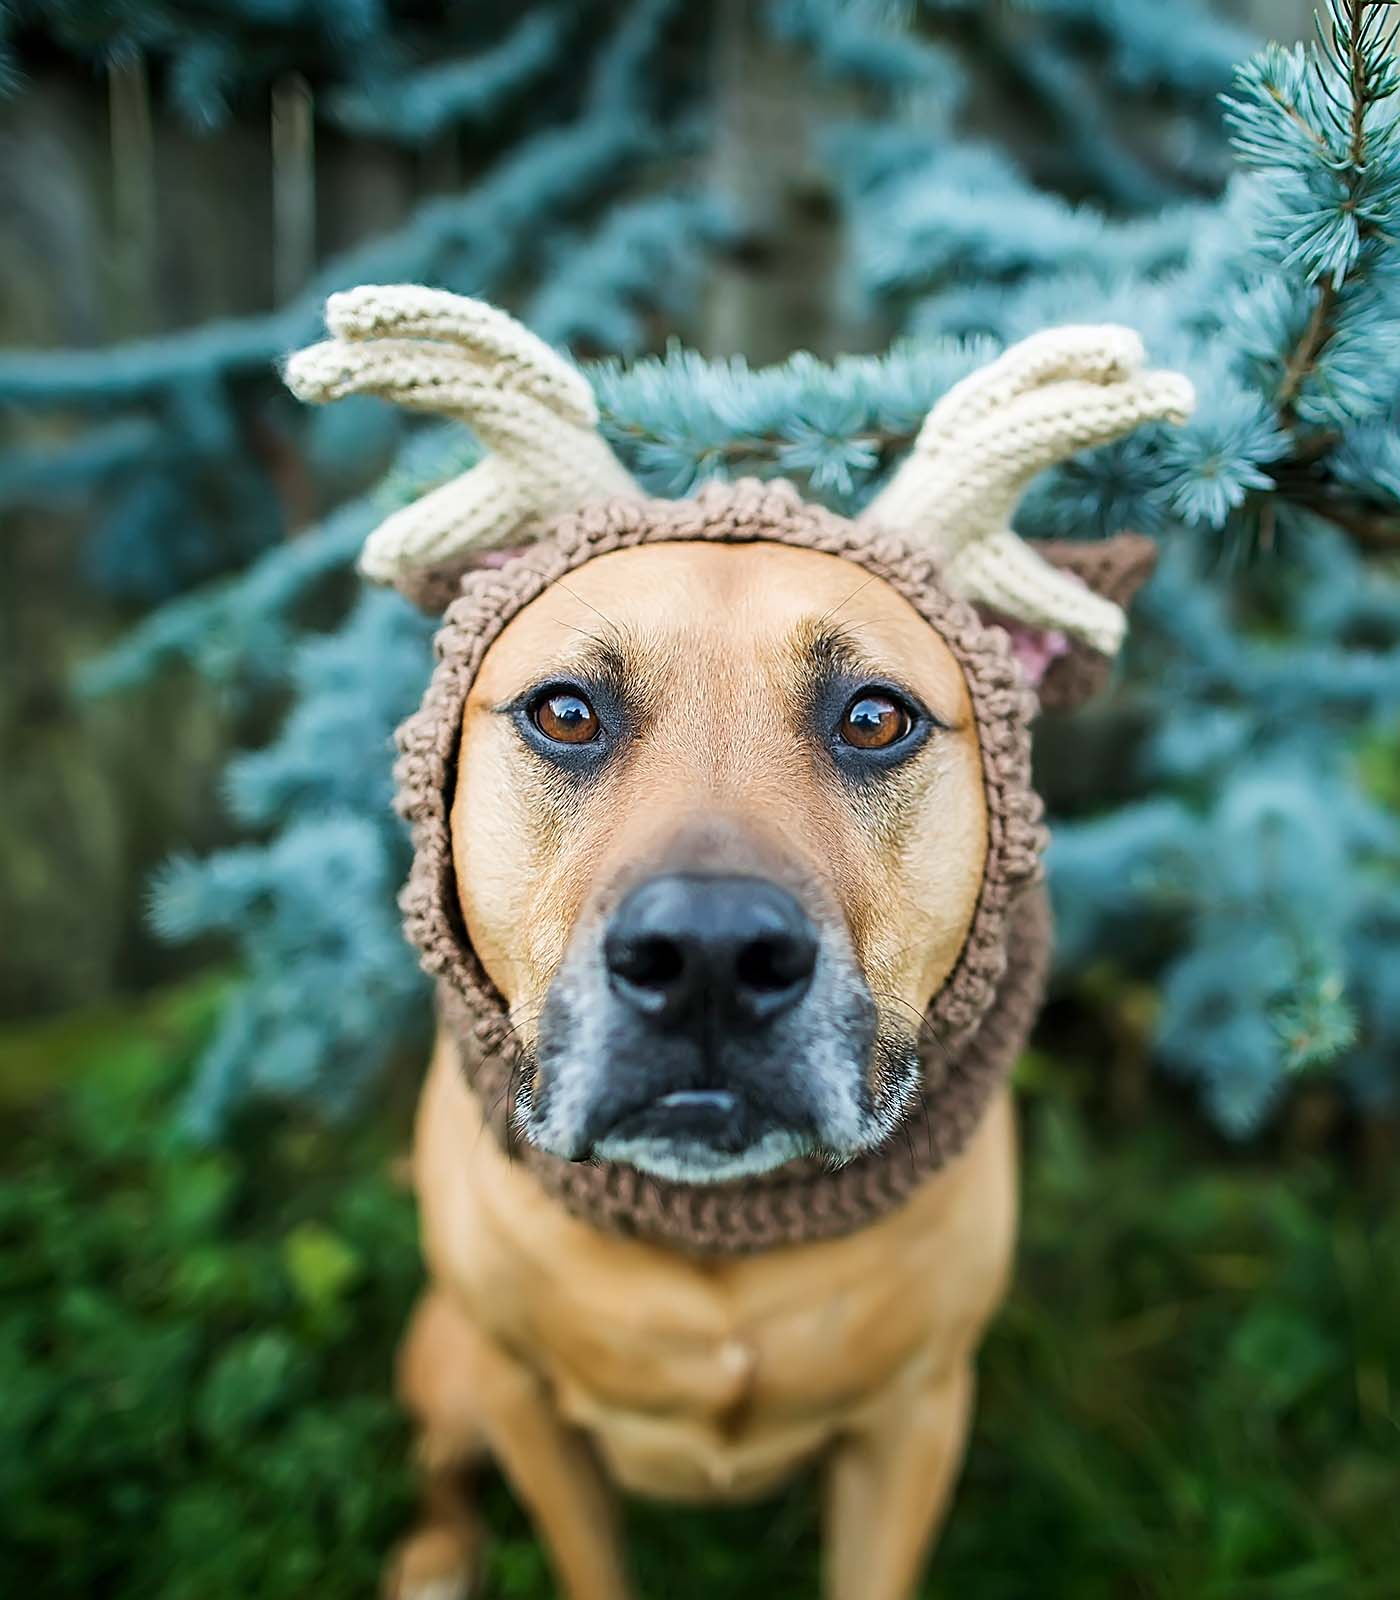 Fetch Stock Lab Mix in Reindeer antlers snood stock dog image by Jamie Piper